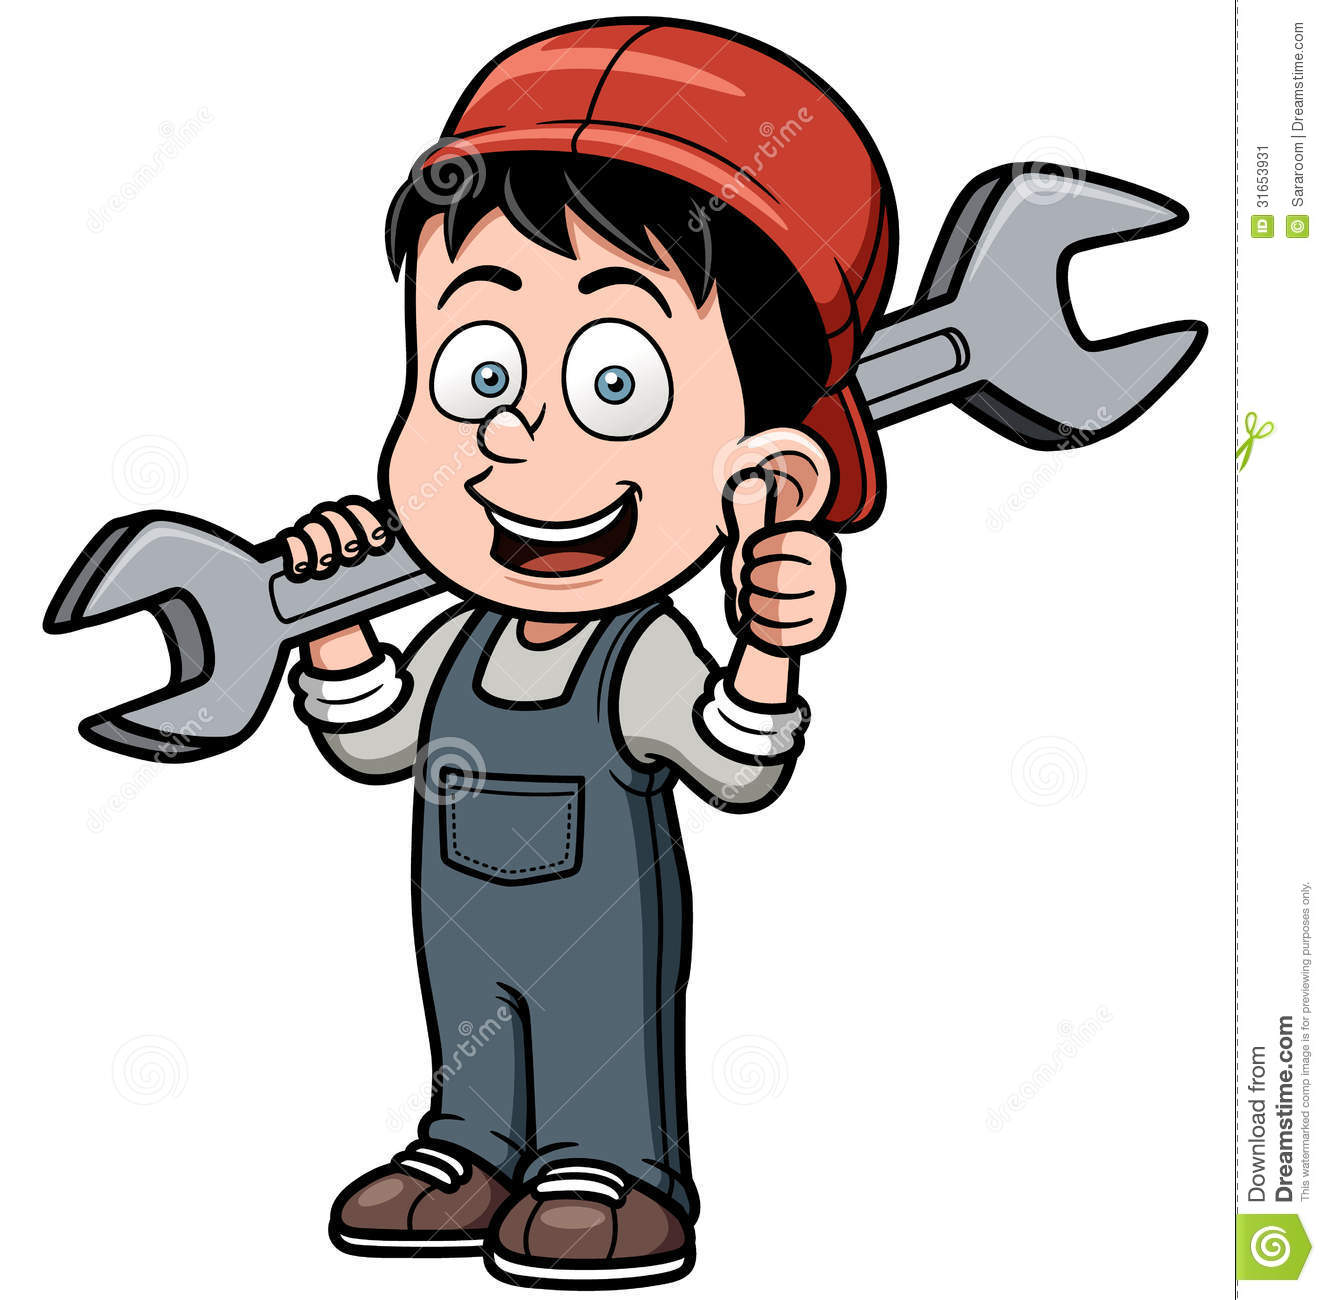 Cartoon Mechanic Holding A Huge Wrench Stock Image - Image: 31653931